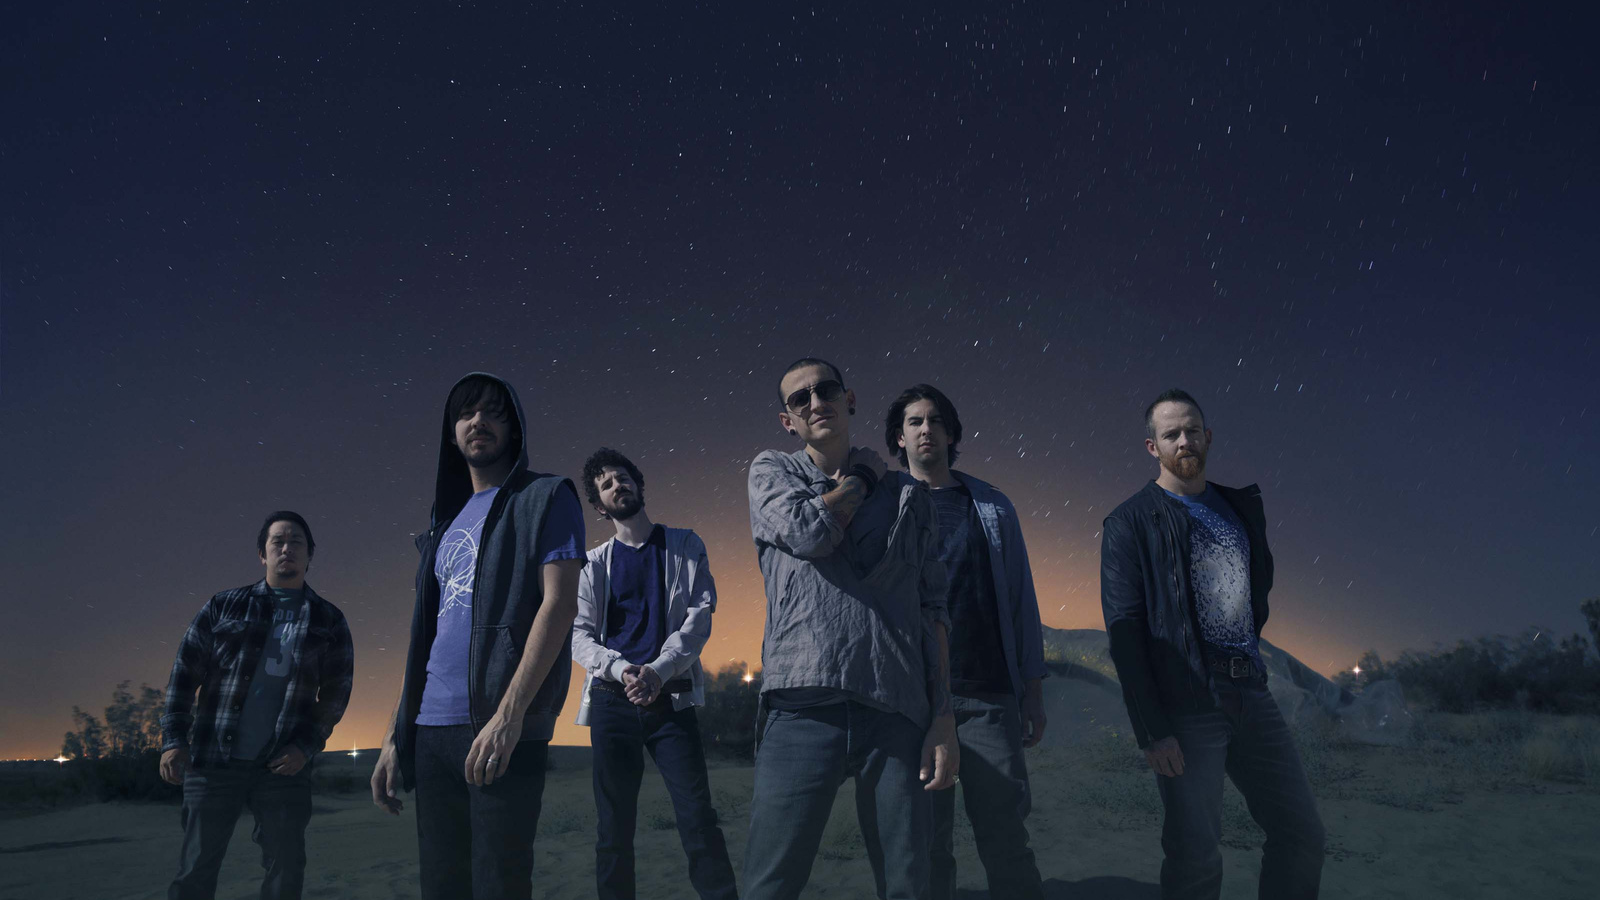 chester, Linkin park, mike, lp